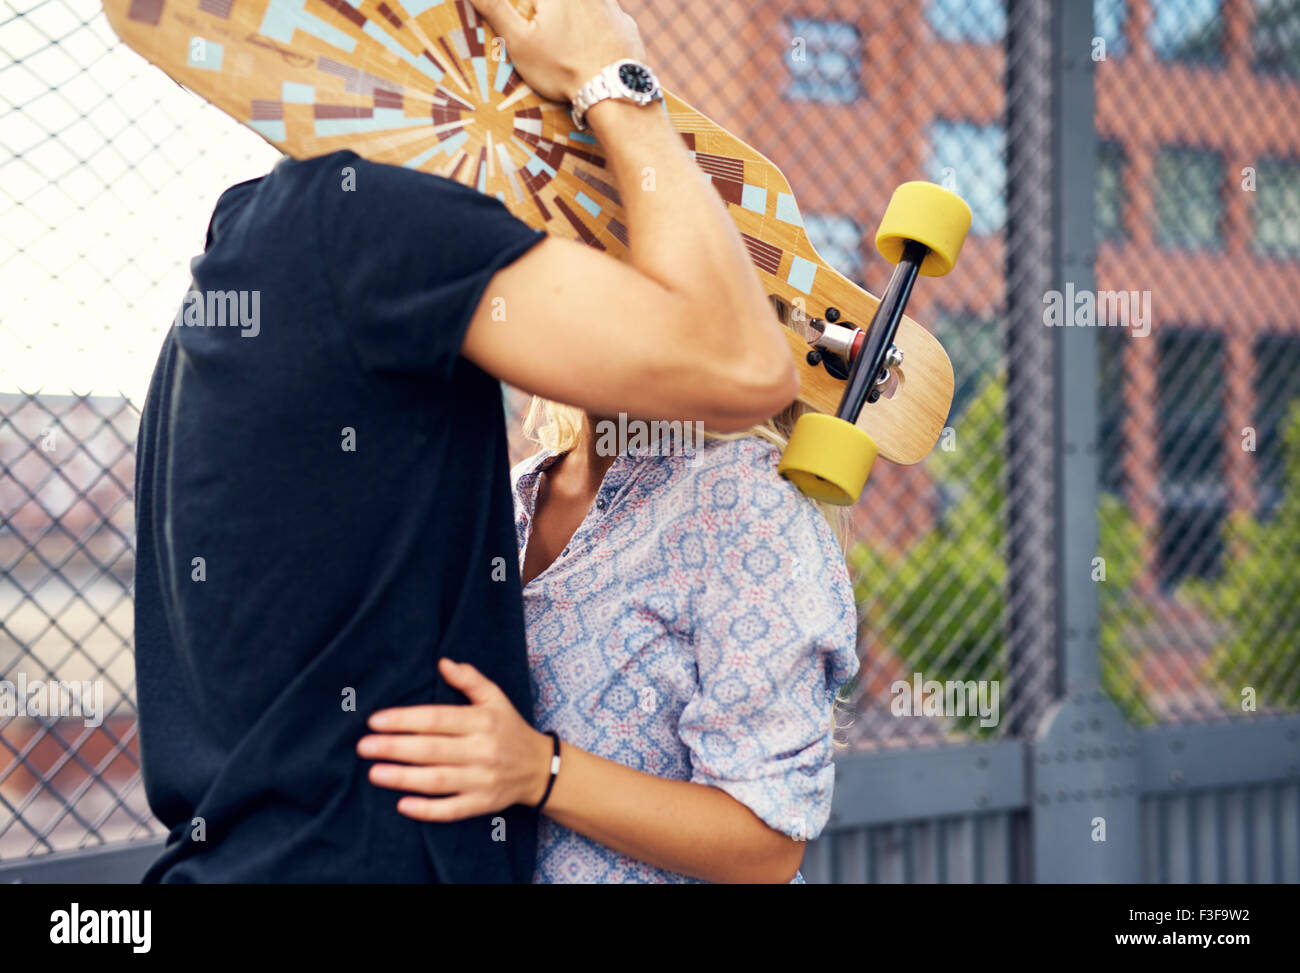 caressing couple hiding behind skateboard and kissing Stock Photo